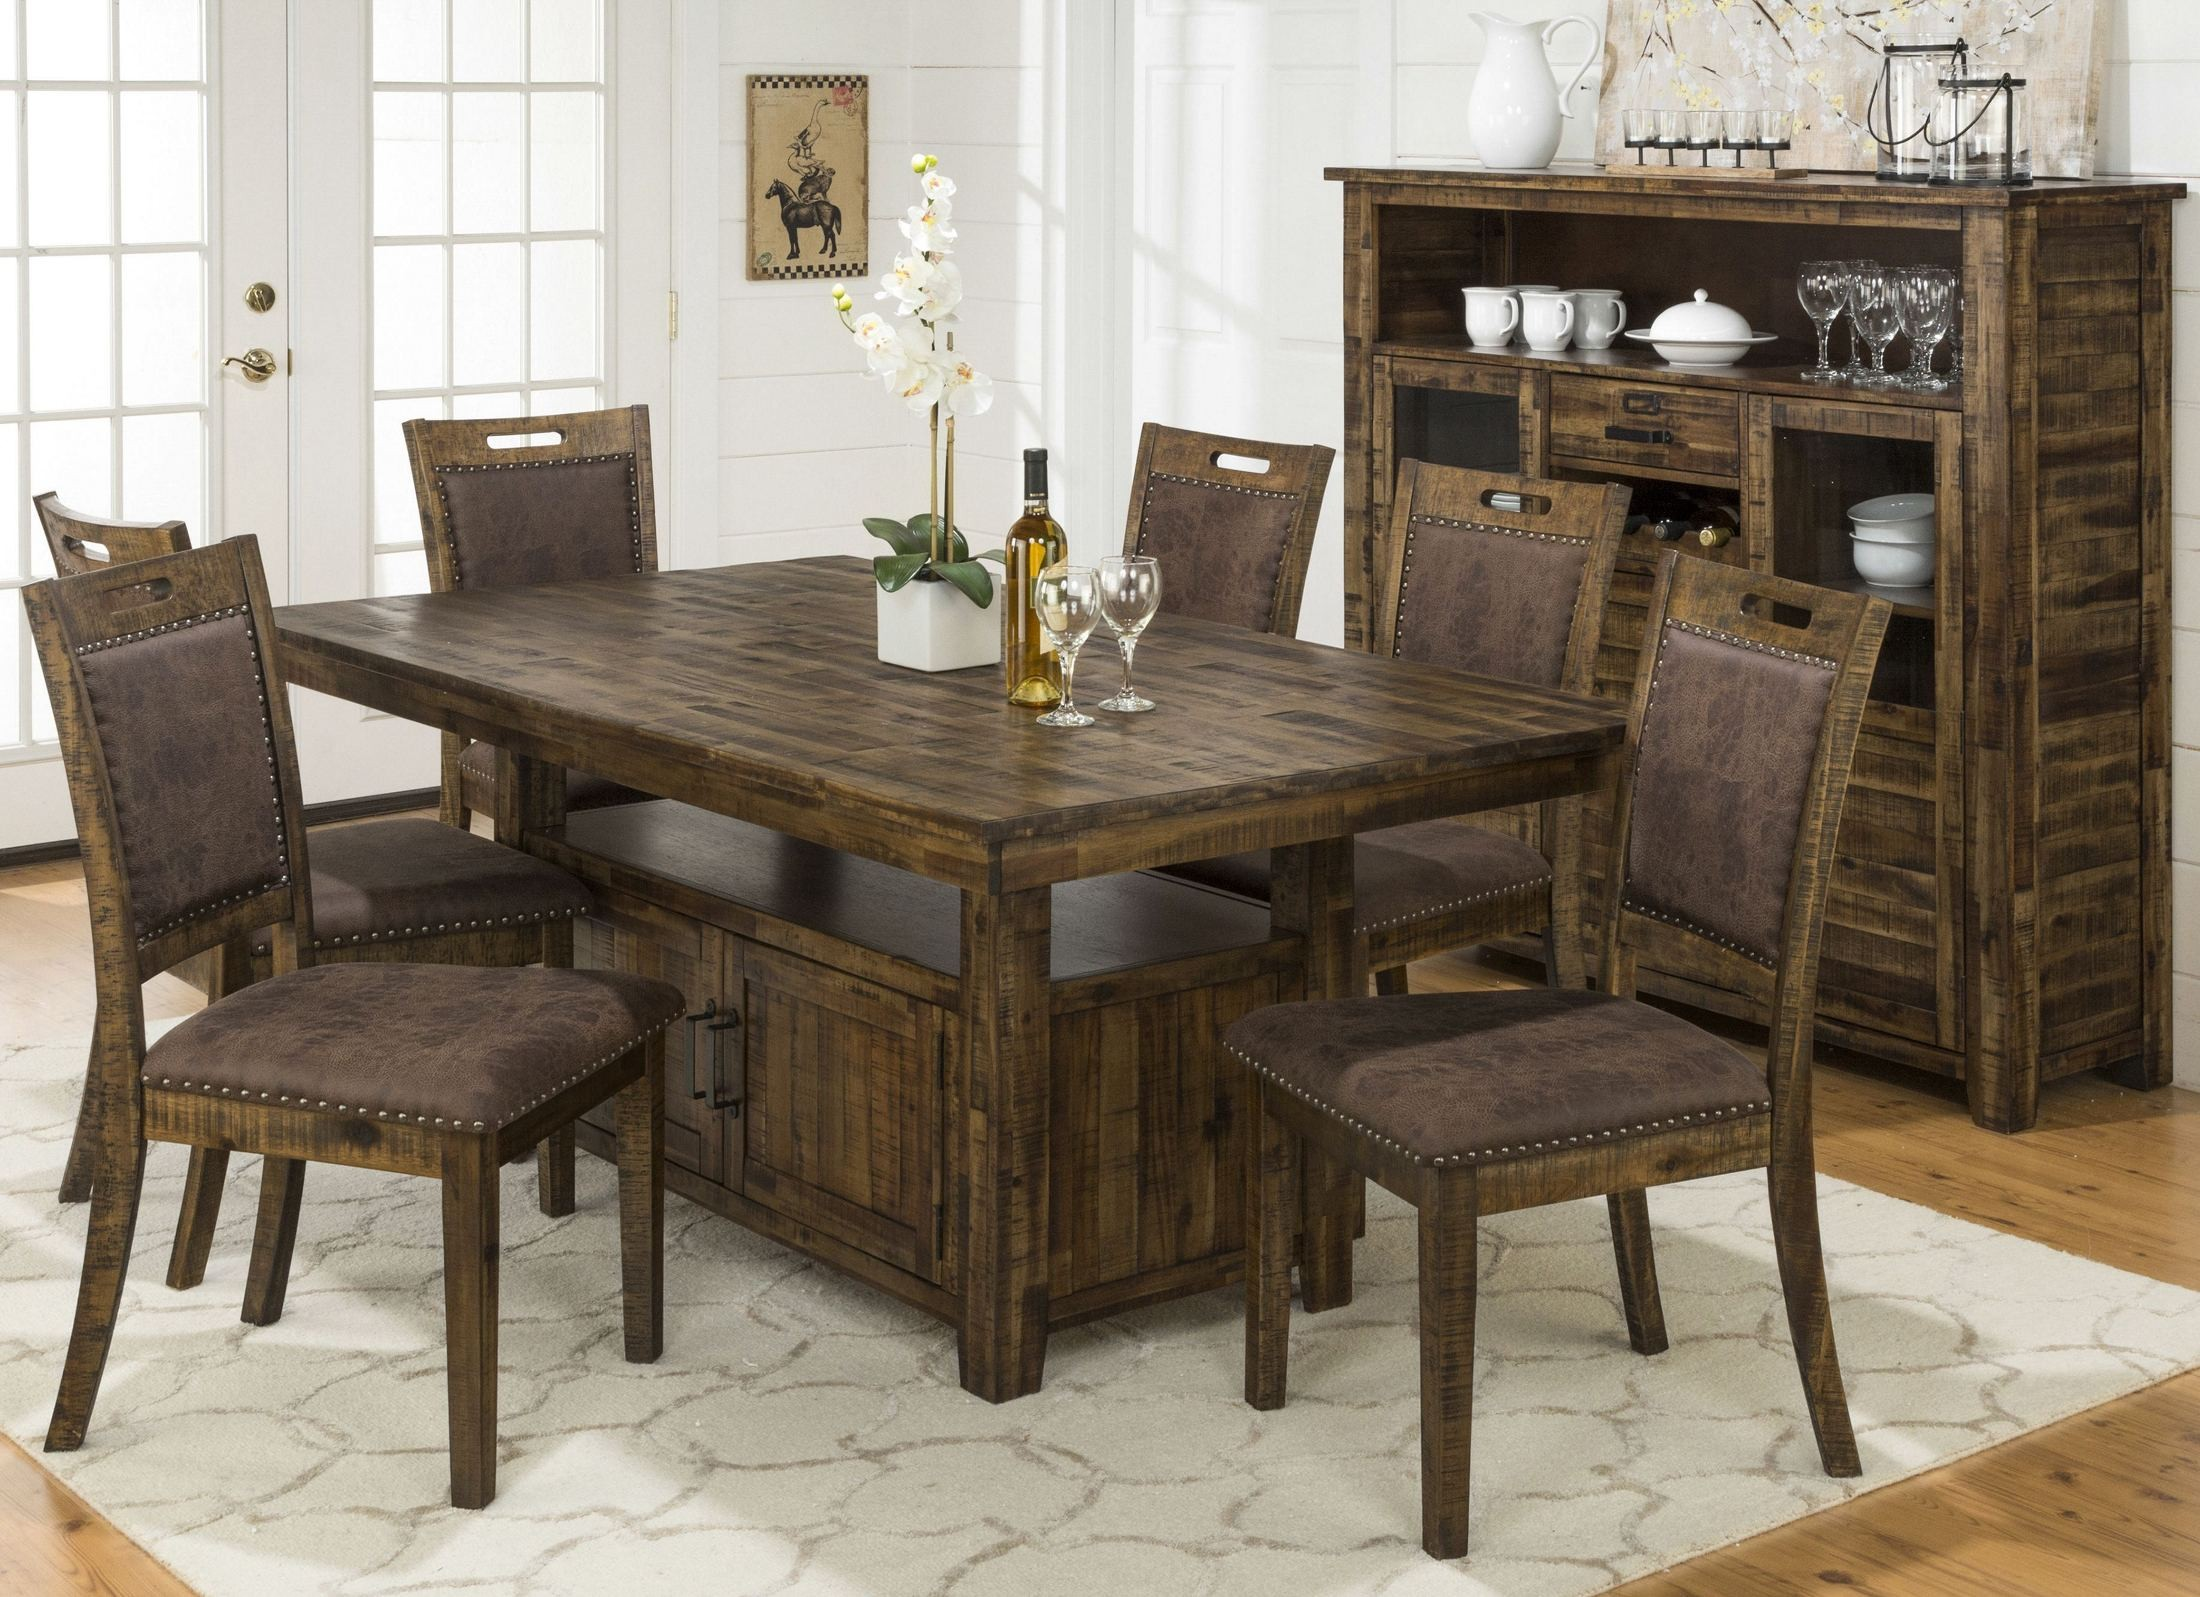 Cannon valley adjustable storage dining room set 1511 72tbkt jofran - Dining room sets with storage ...